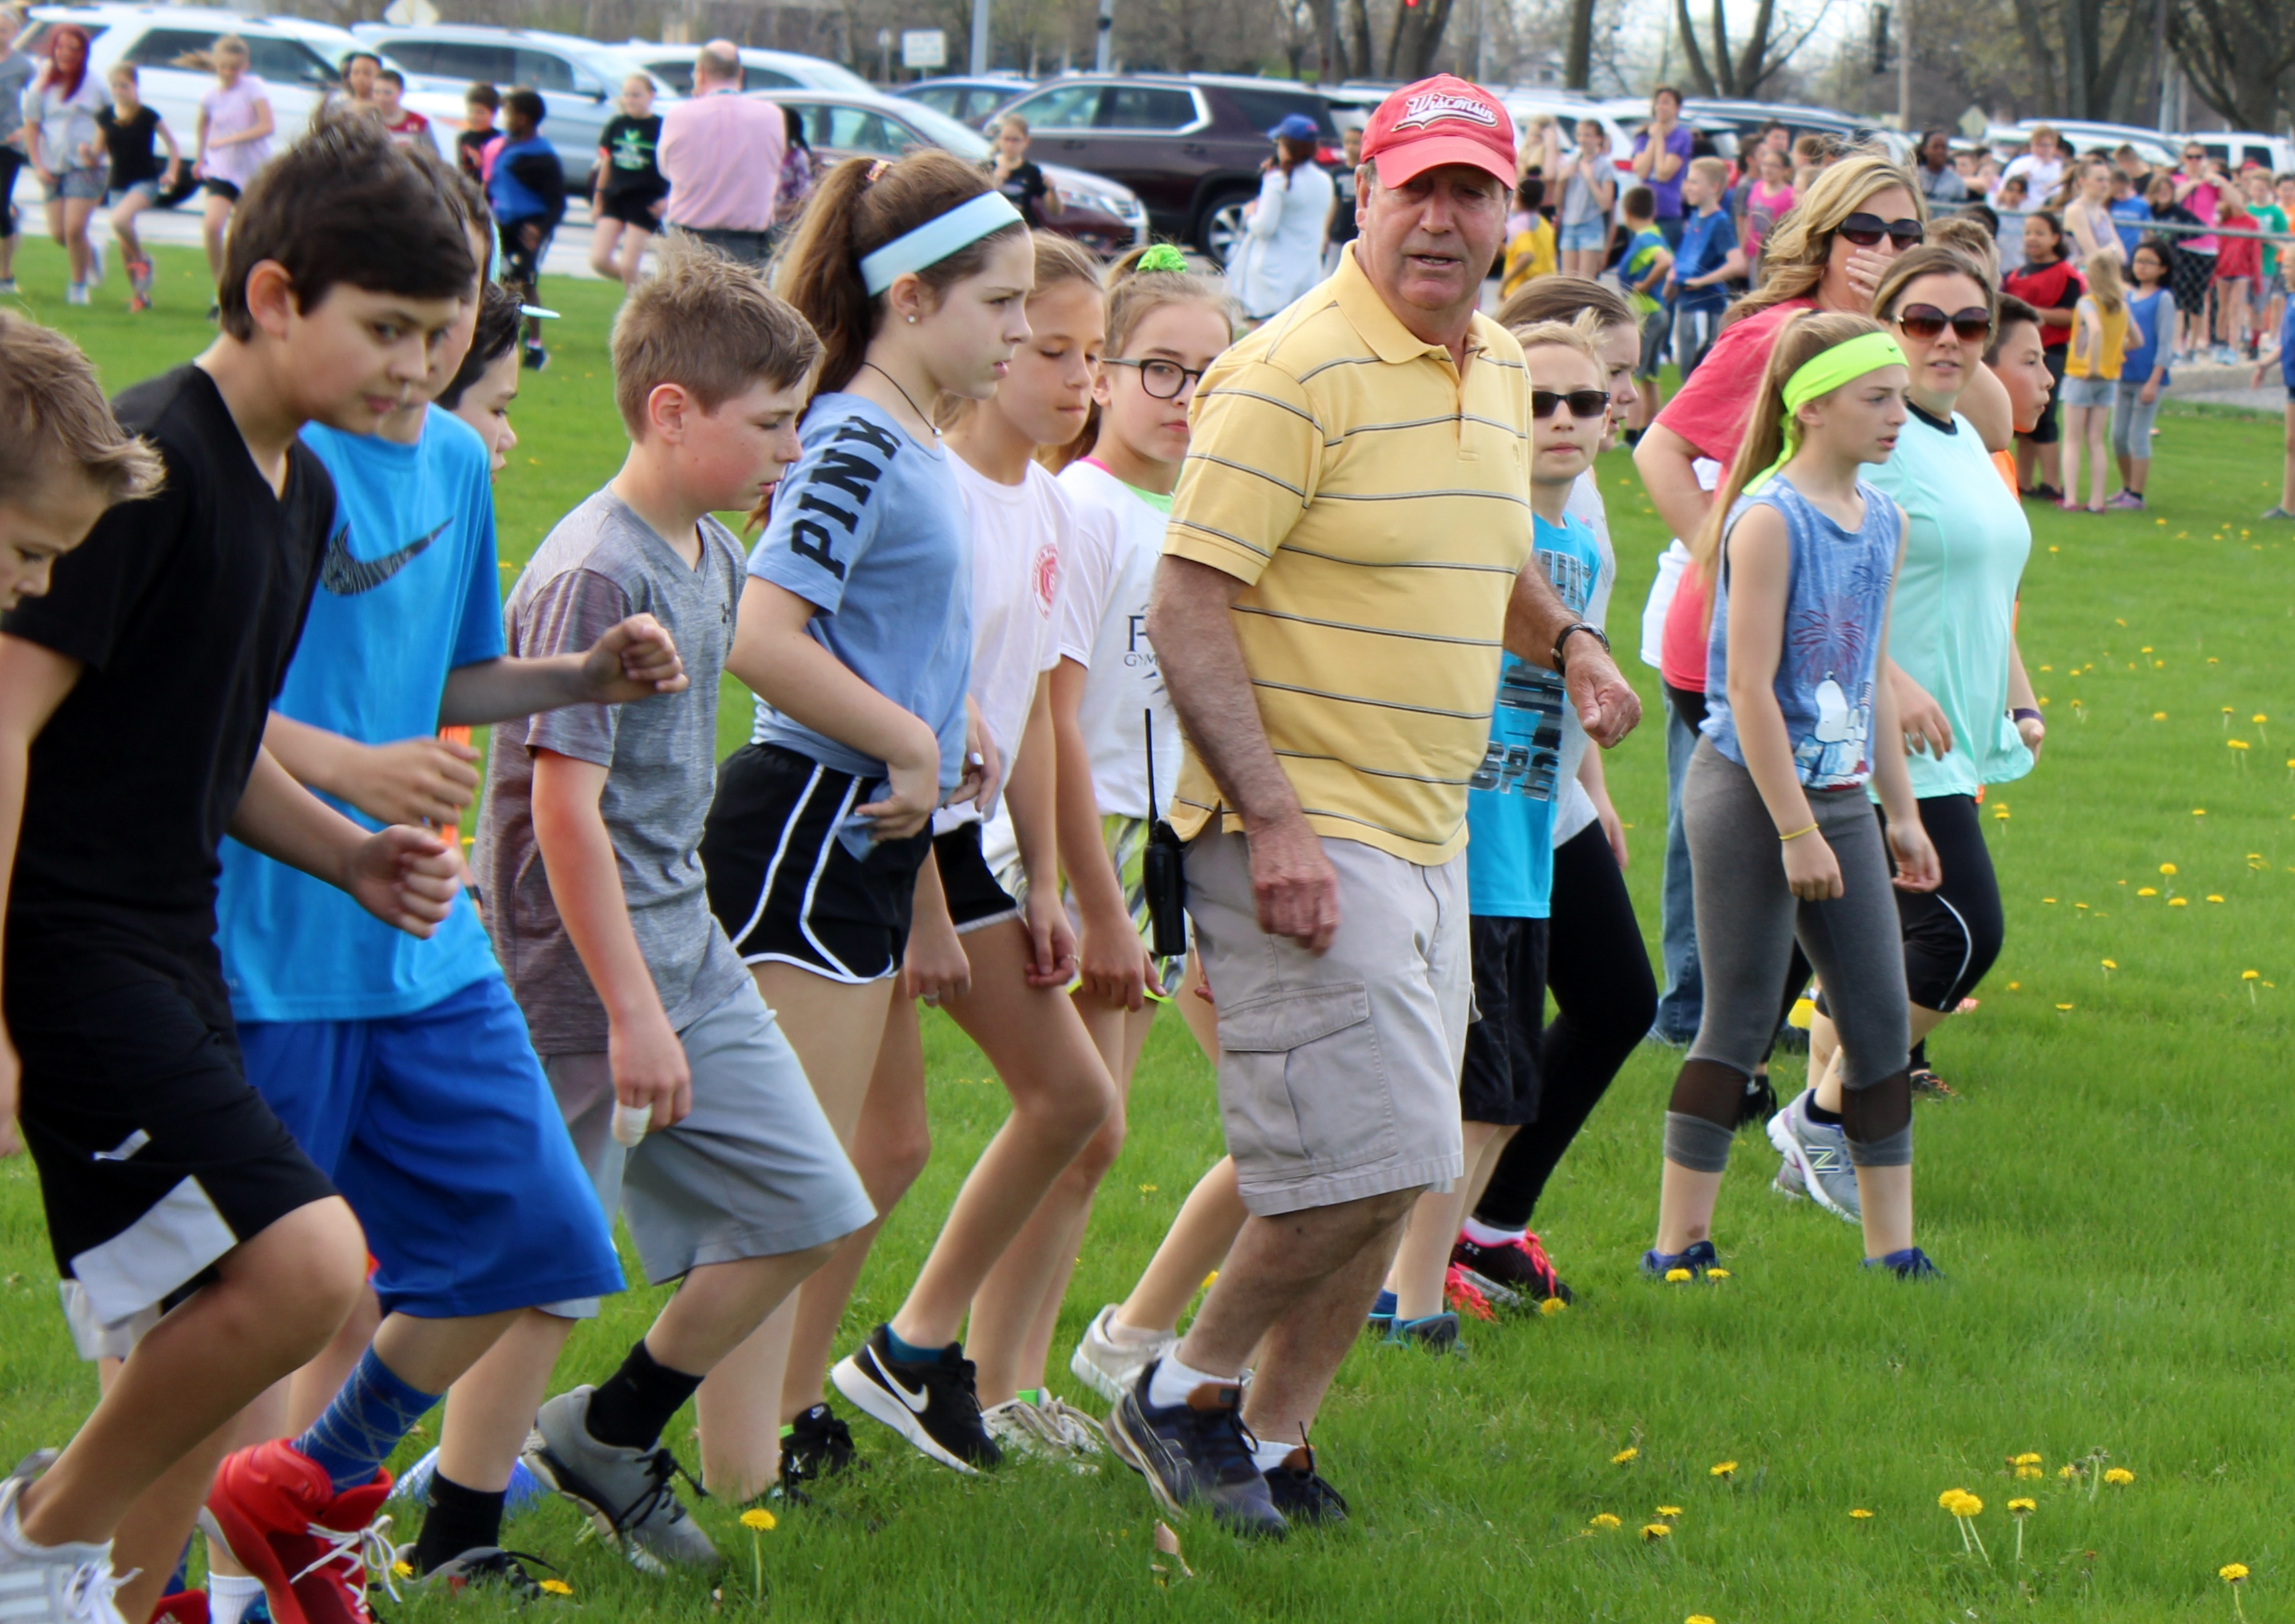 Walker's Grove Elementary School physical education and health teacher Steve Riederer leads students during a 50 yard dash during an all school exercise event on May 2, 2018. Riederer is retiring this year after 45 years in education, including 42 in District 202.